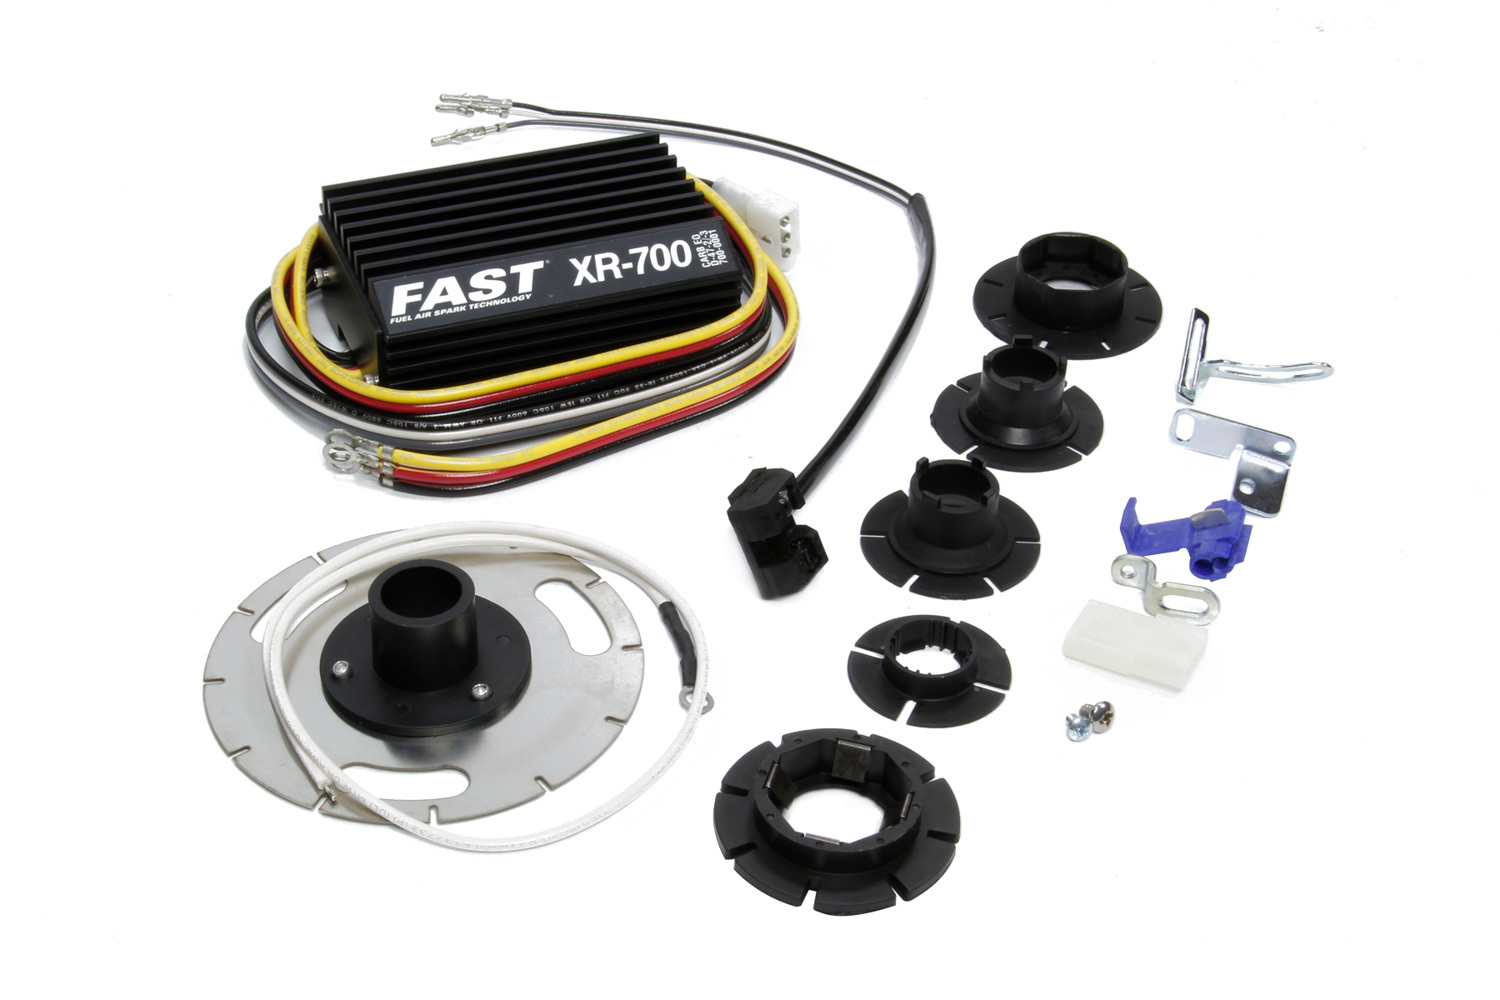 FAST 700-0300 Ignition Conversion Kit, XR700, Electronic, Optical Trigger, British Import, Lucas OPUS Distributor, Kit